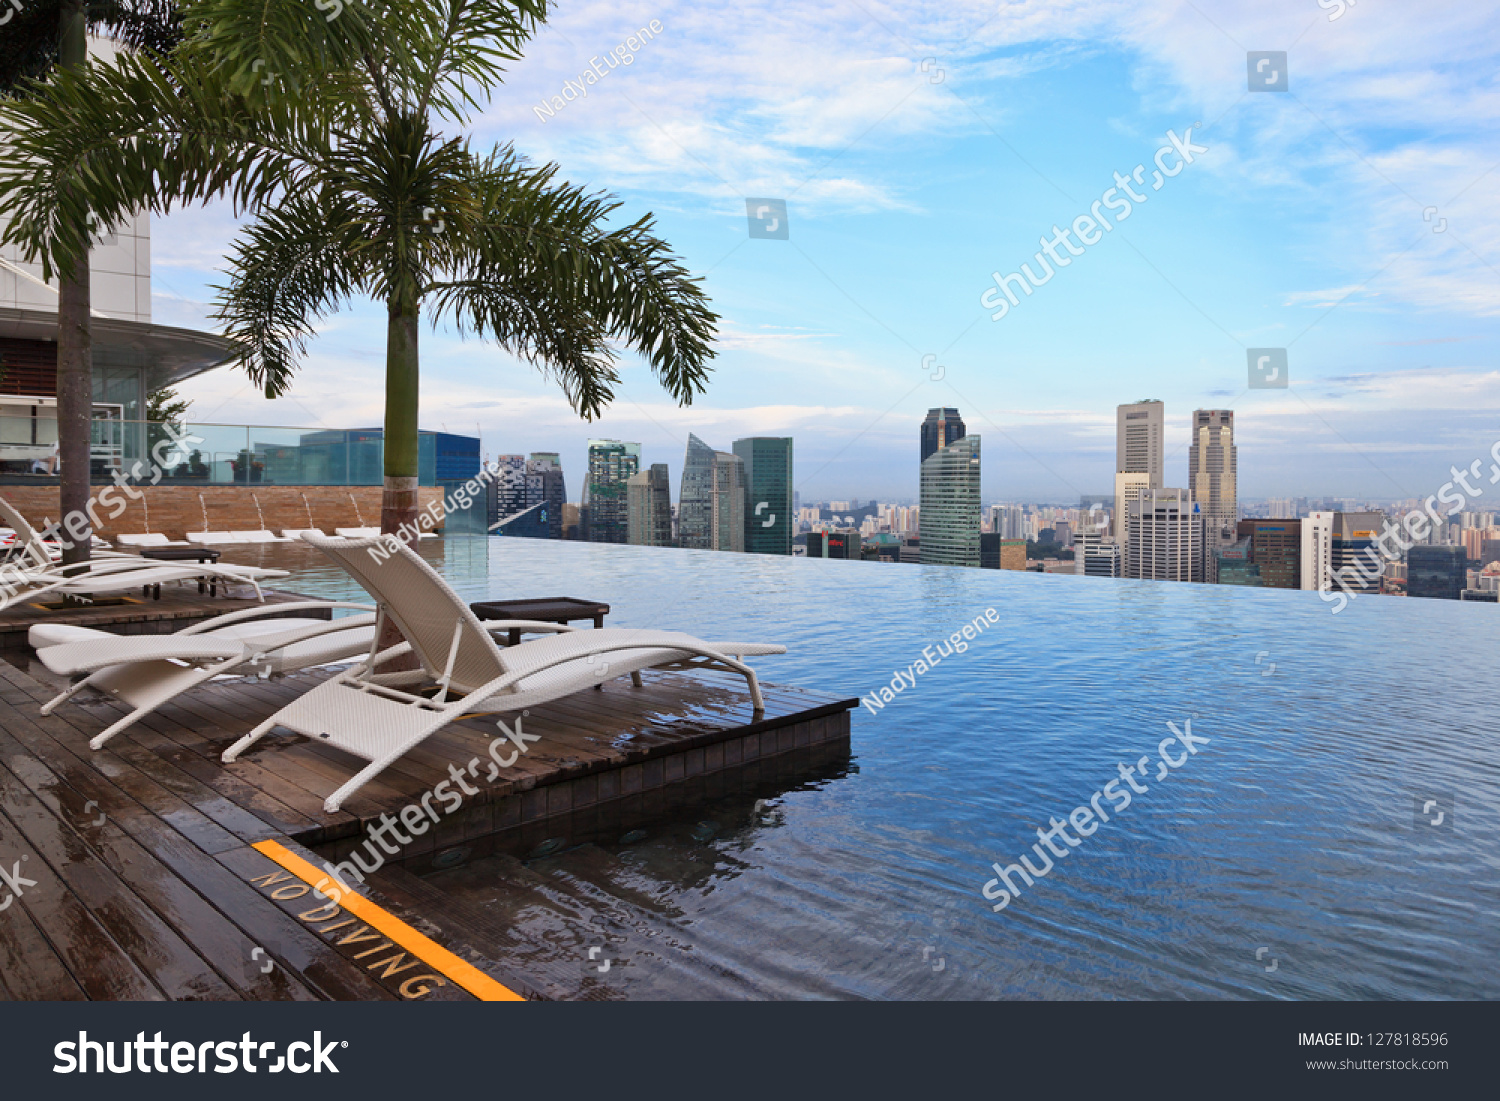 Singapore January 5 Infinity Swimming Pool Of The Marina Bay Sands On January 5 2013 In